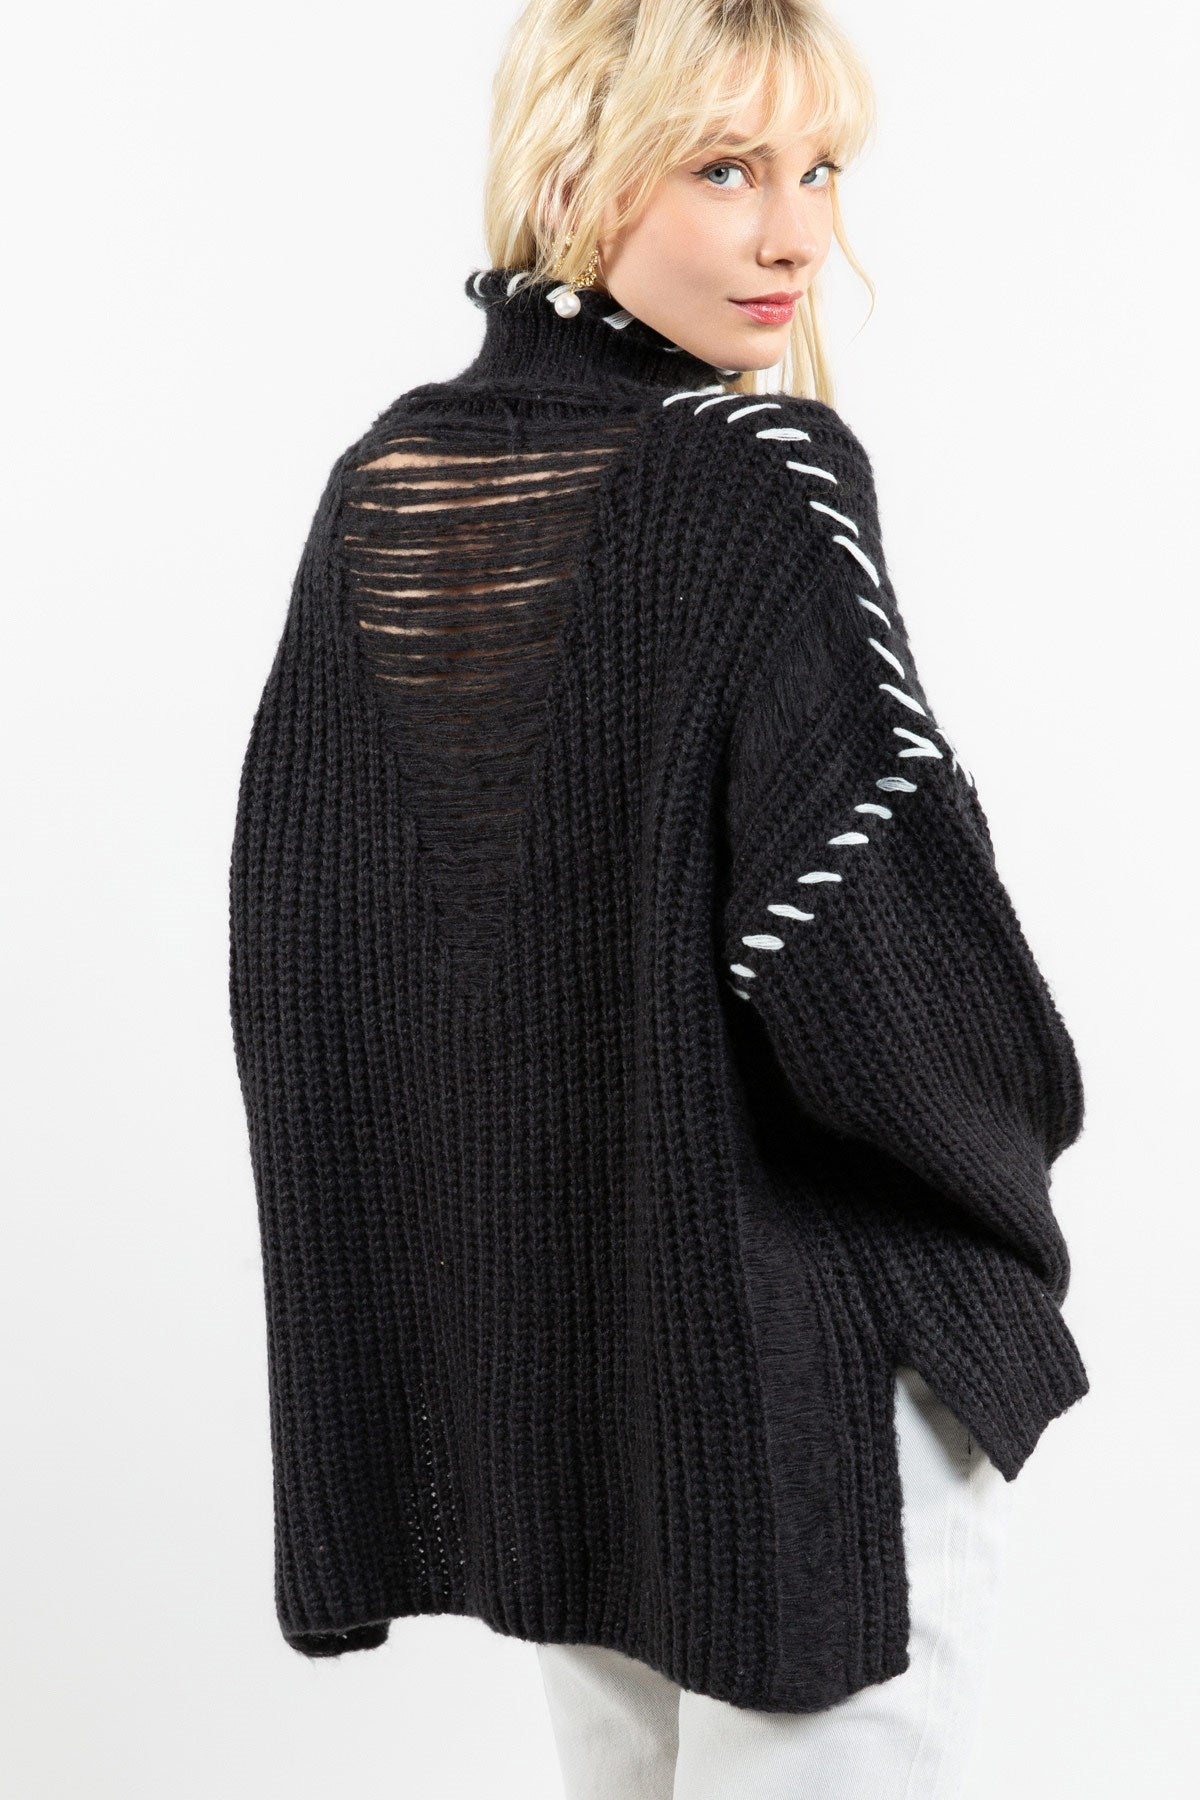 Black Turtleneck Oversized Sweater with White Stitching